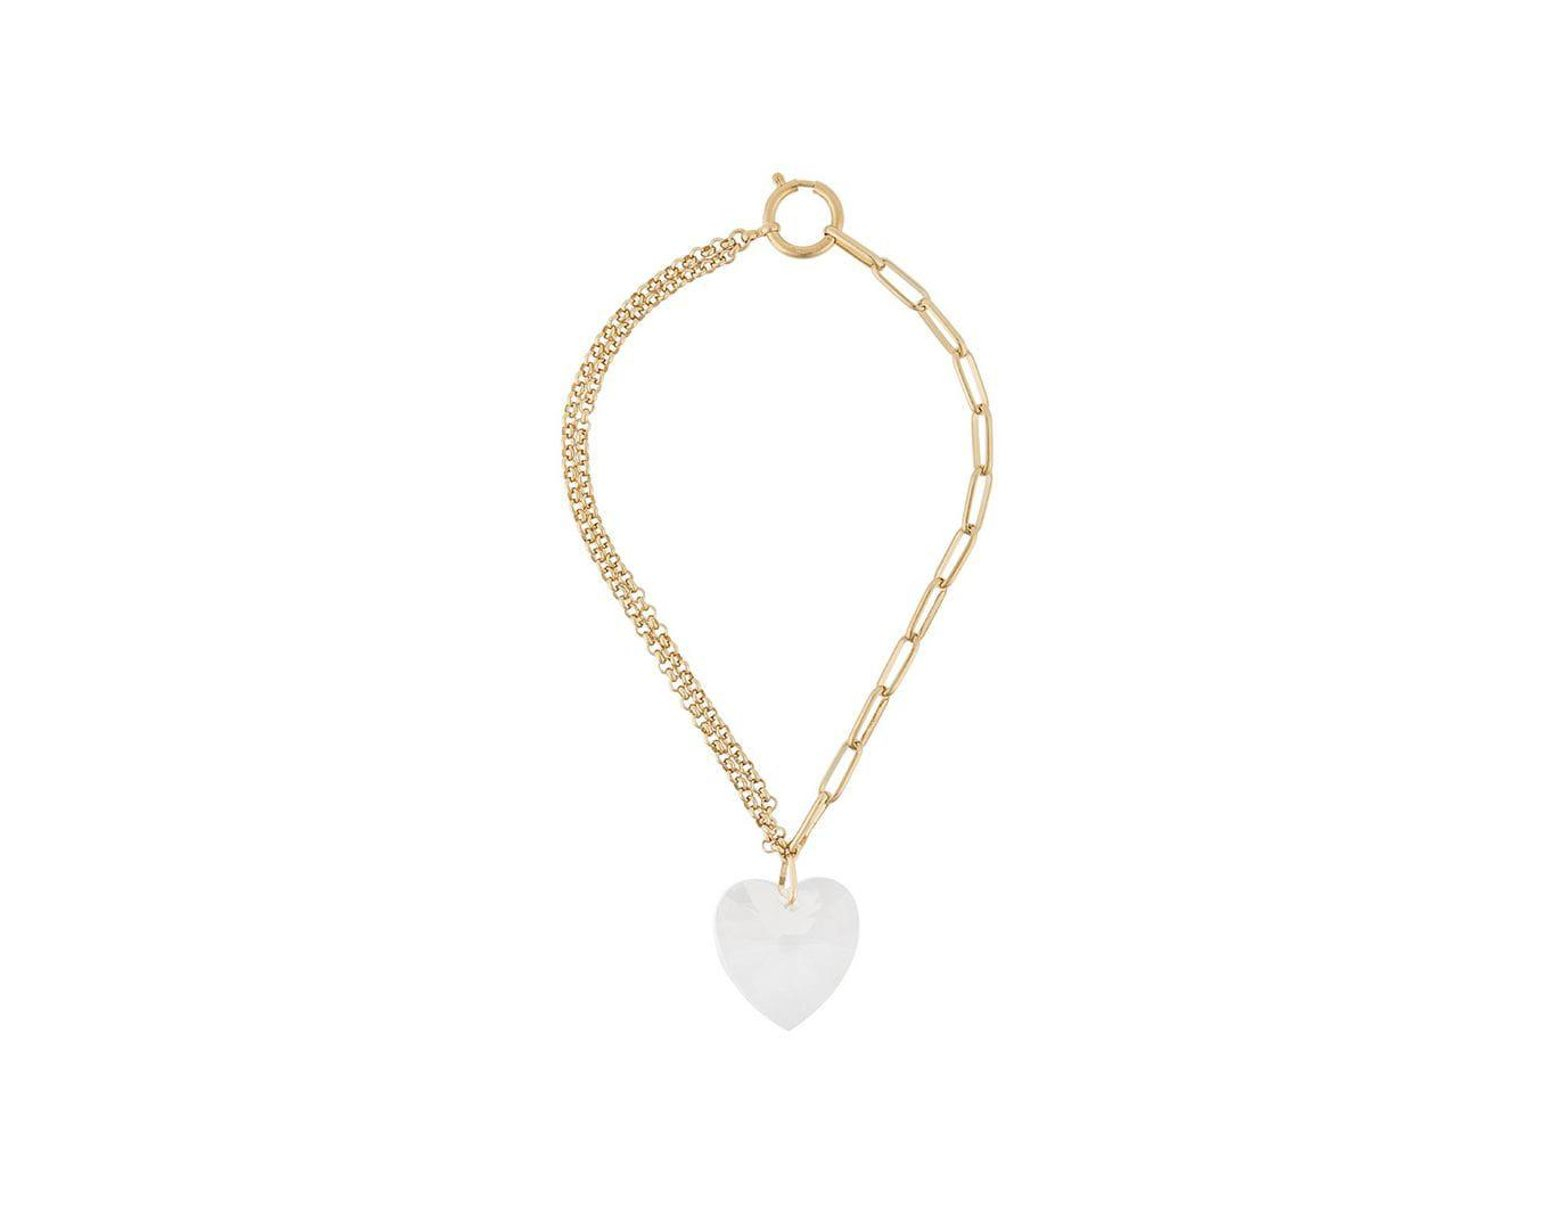 Isabel Marant Crystal Heart Necklace In Metallic – Lyst With Regard To Most Recent Interlocked Hearts Collier Necklaces (View 9 of 25)